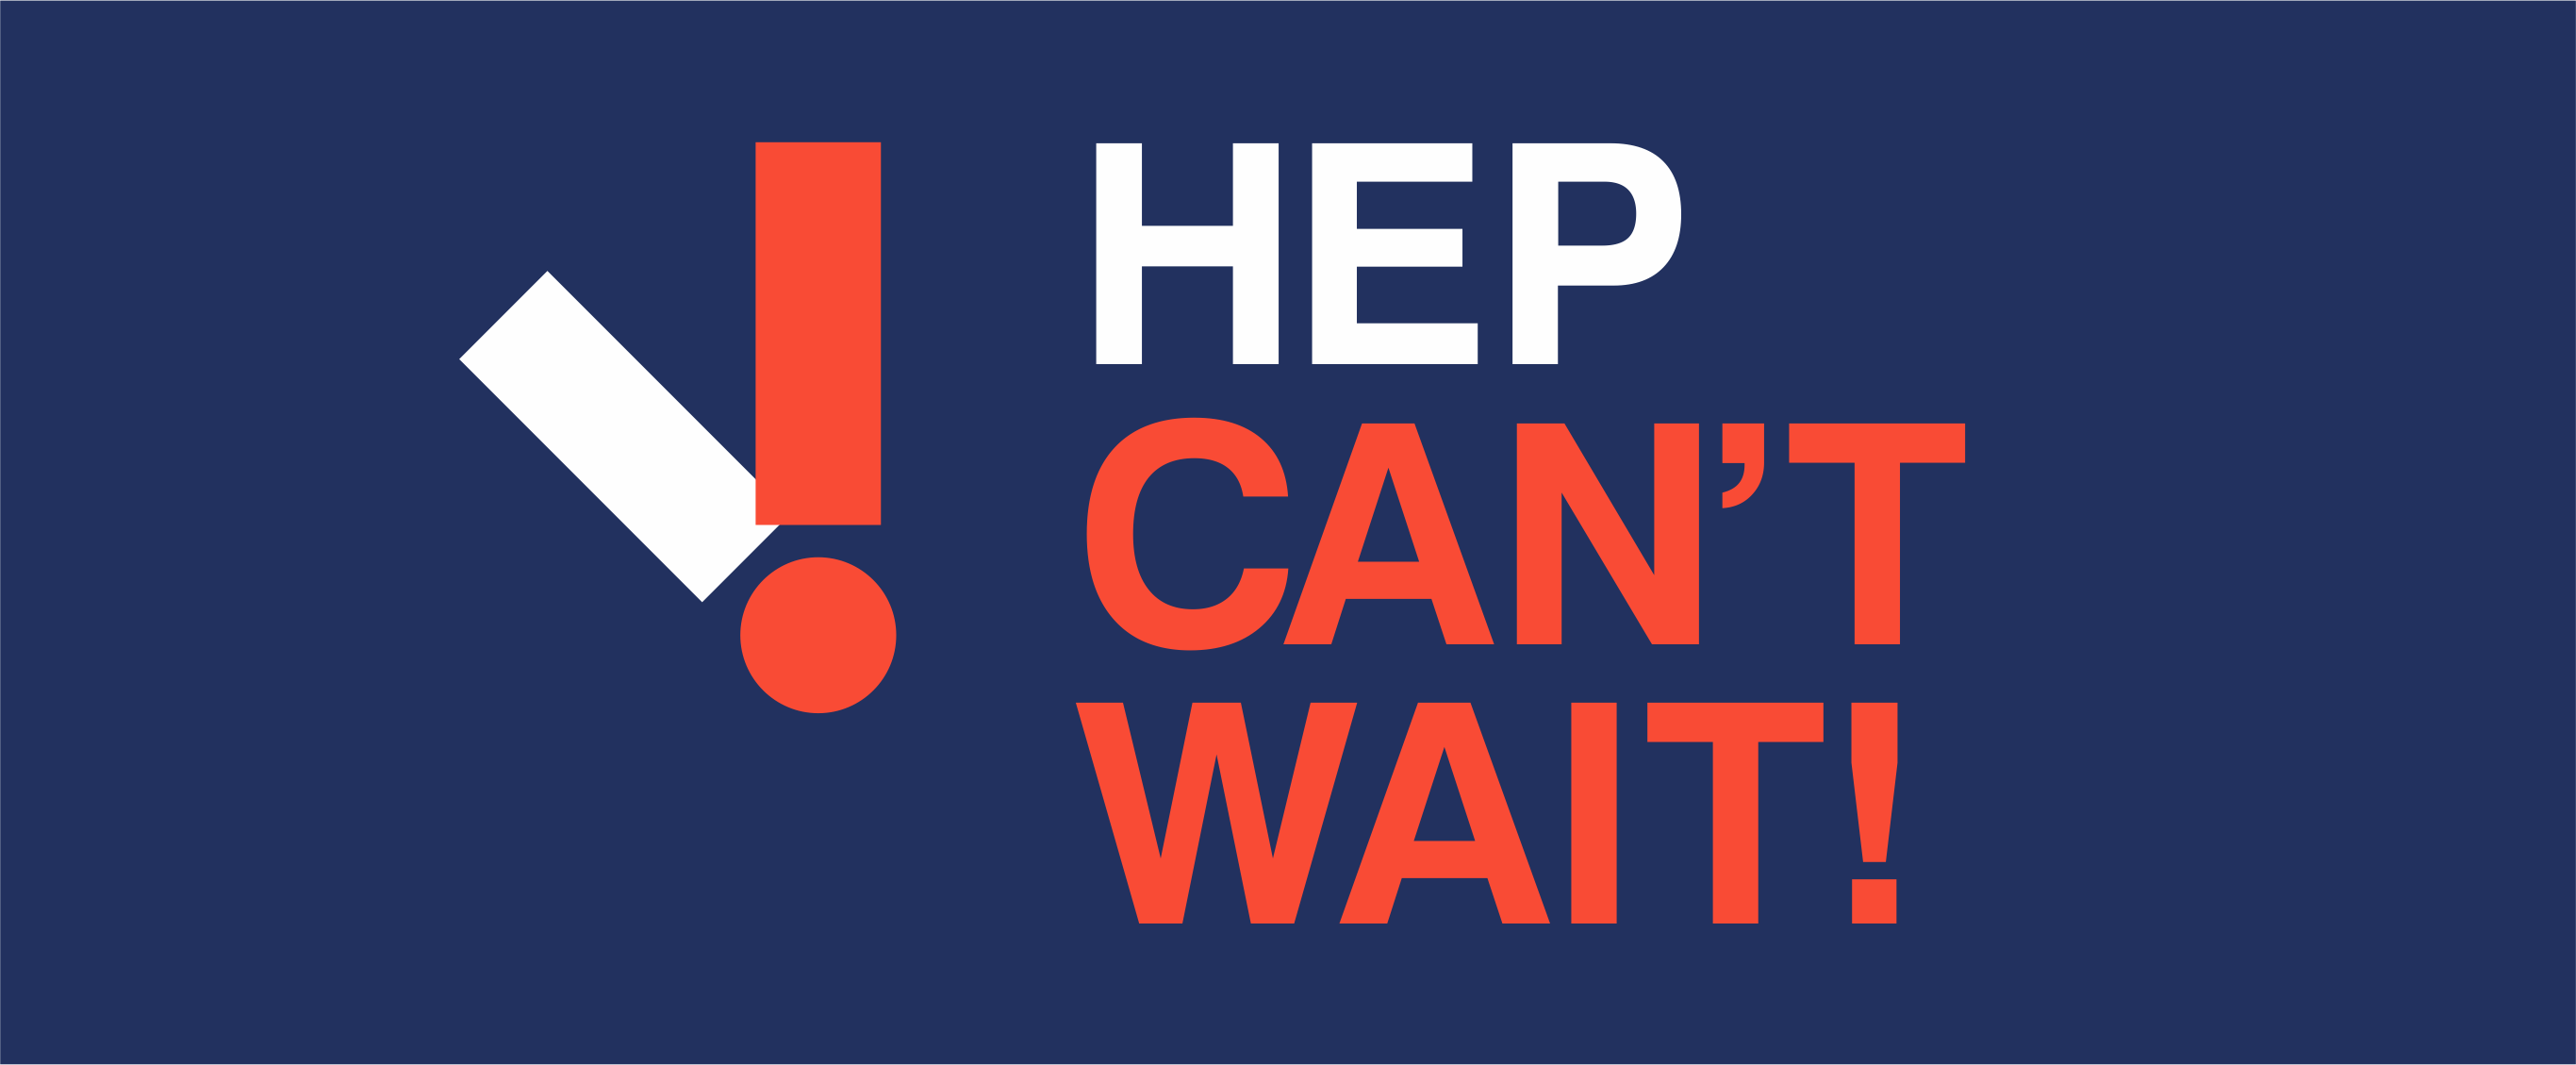 Hep Can't What?